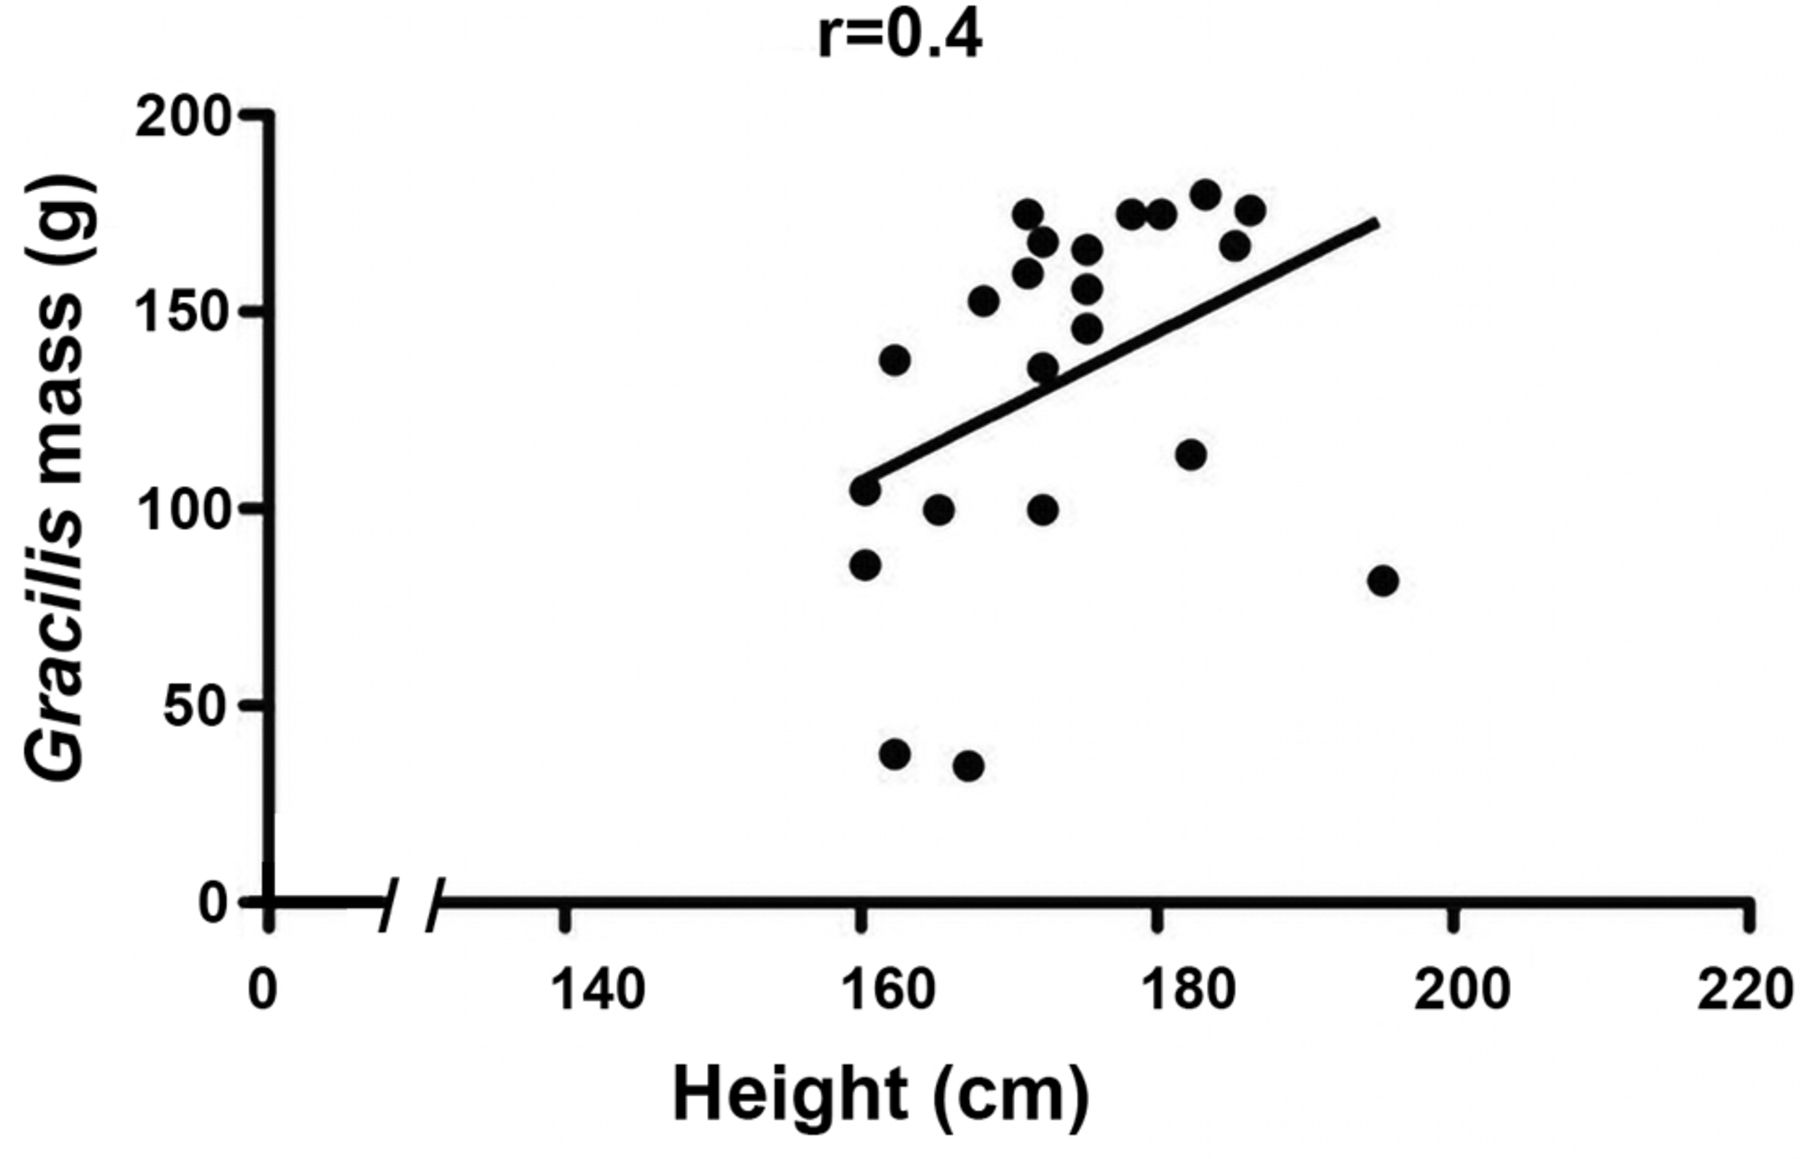 hight resolution of patient height weight bmi and age as predictors of gracilis muscle free flap mass in lower extremity reconstruction